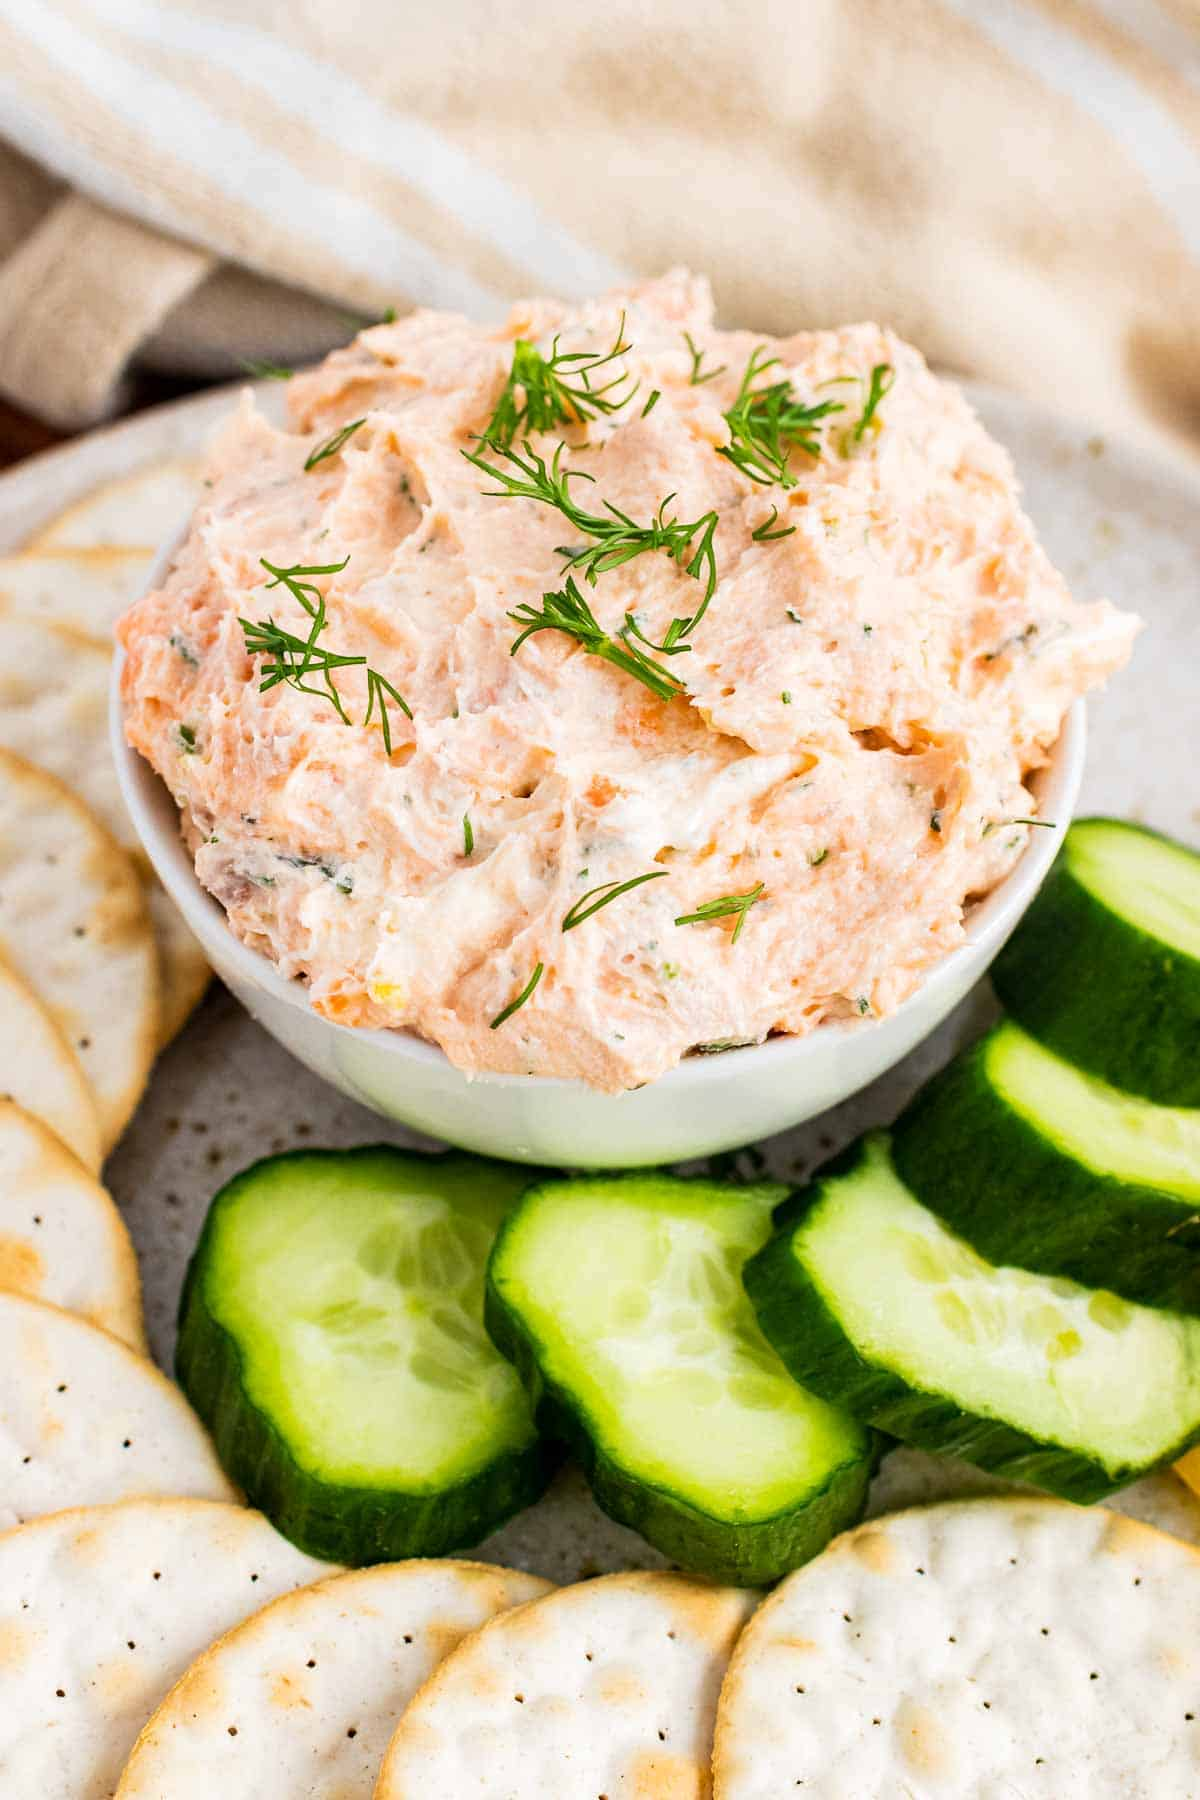 Bowl of smoked salmon spread with crackers and cucumbers